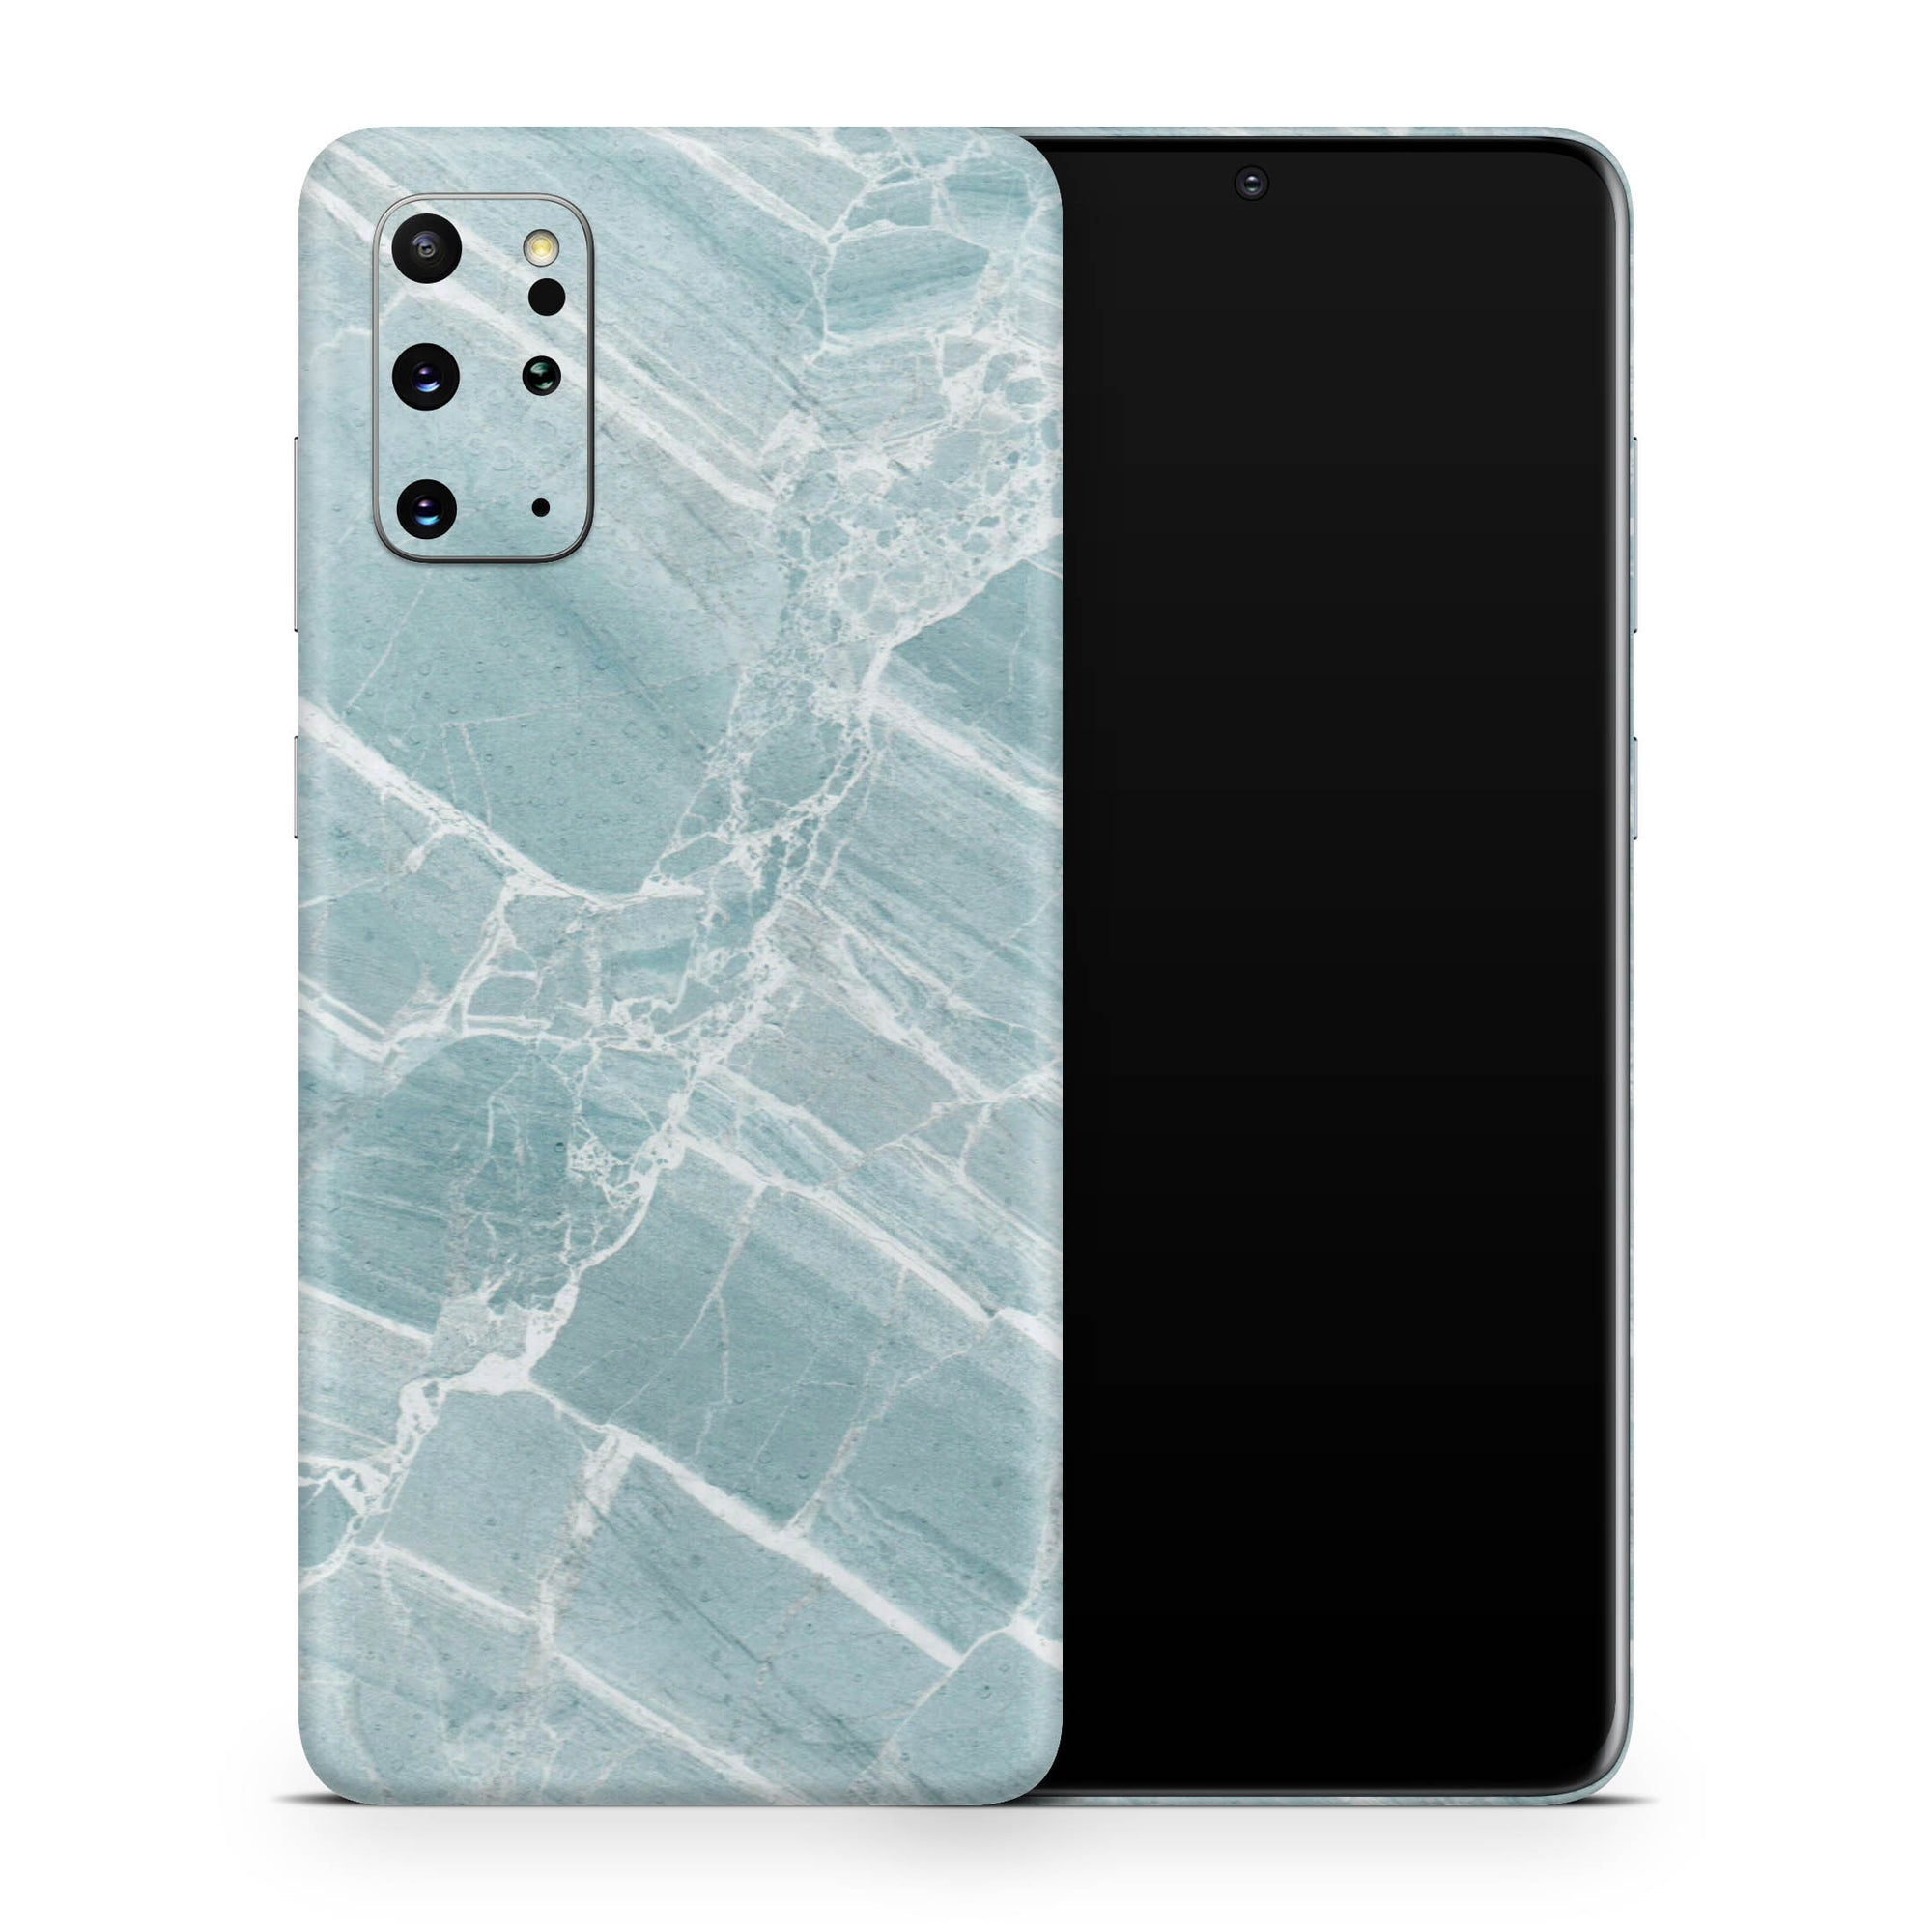 Mint Marble Galaxy S20 Plus Skin + Case-Uniqfind